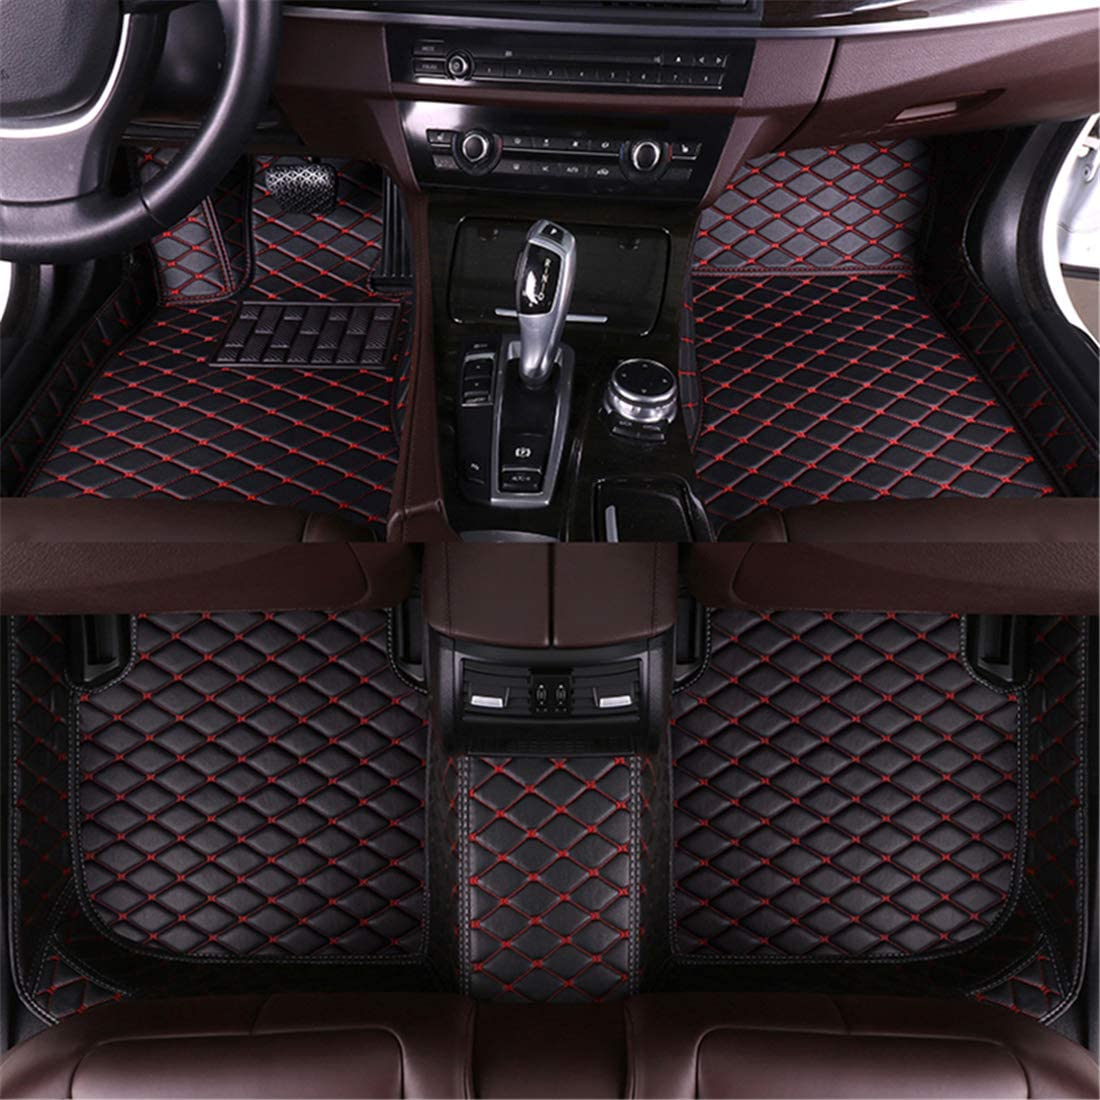 Muchkey car Floor Mats fit for Nissan 350Z 2003-2007 Full Coverage All Weather Protection Non-Slip Leather Floor Liners Black-Red